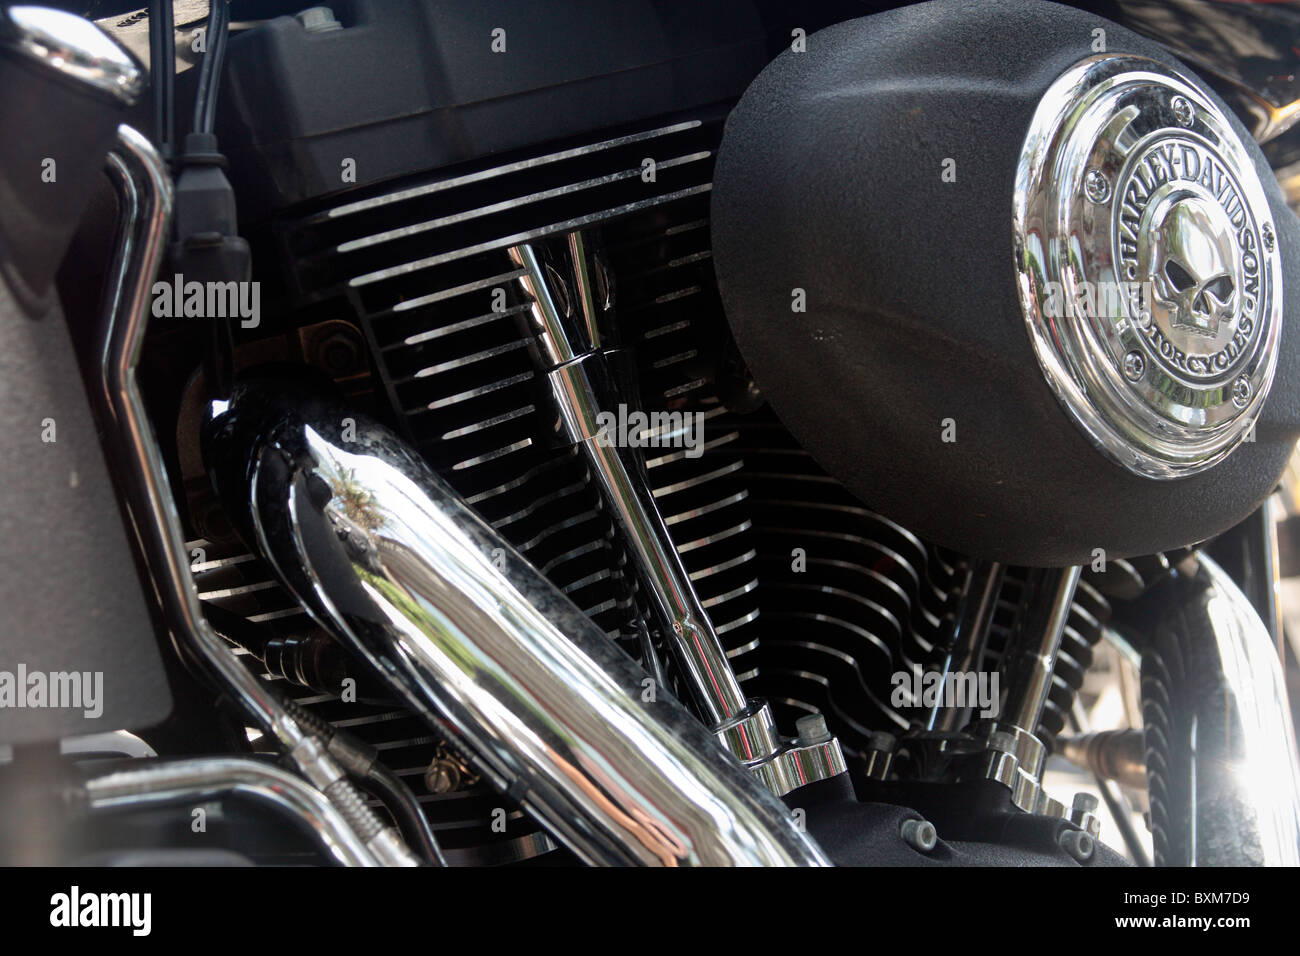 Harley Davidson 'Night Train' Limited Edition no 16 of 150 - Stock Image